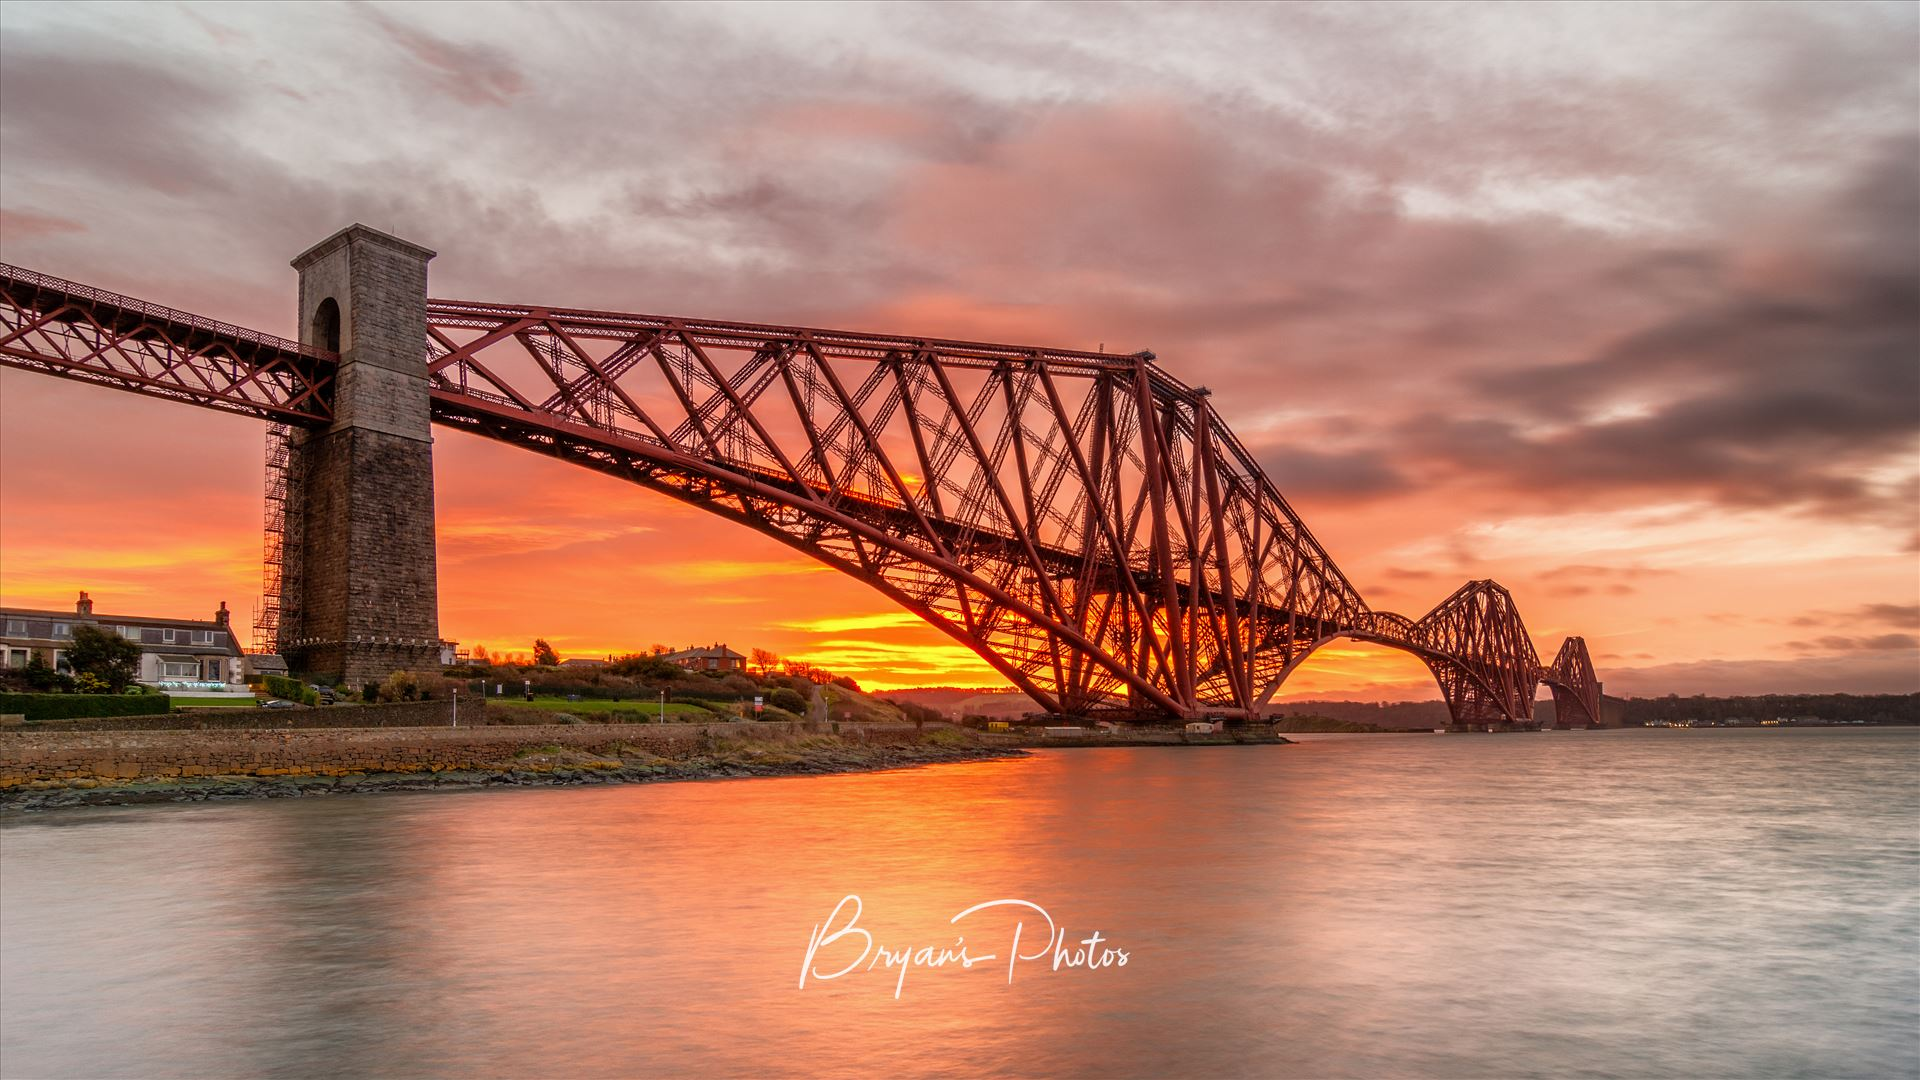 The Bridge at Sunrise Panorama A photograph of the Forth Rail Bridge taken at Sunrise from North Queensferry. by Bryans Photos